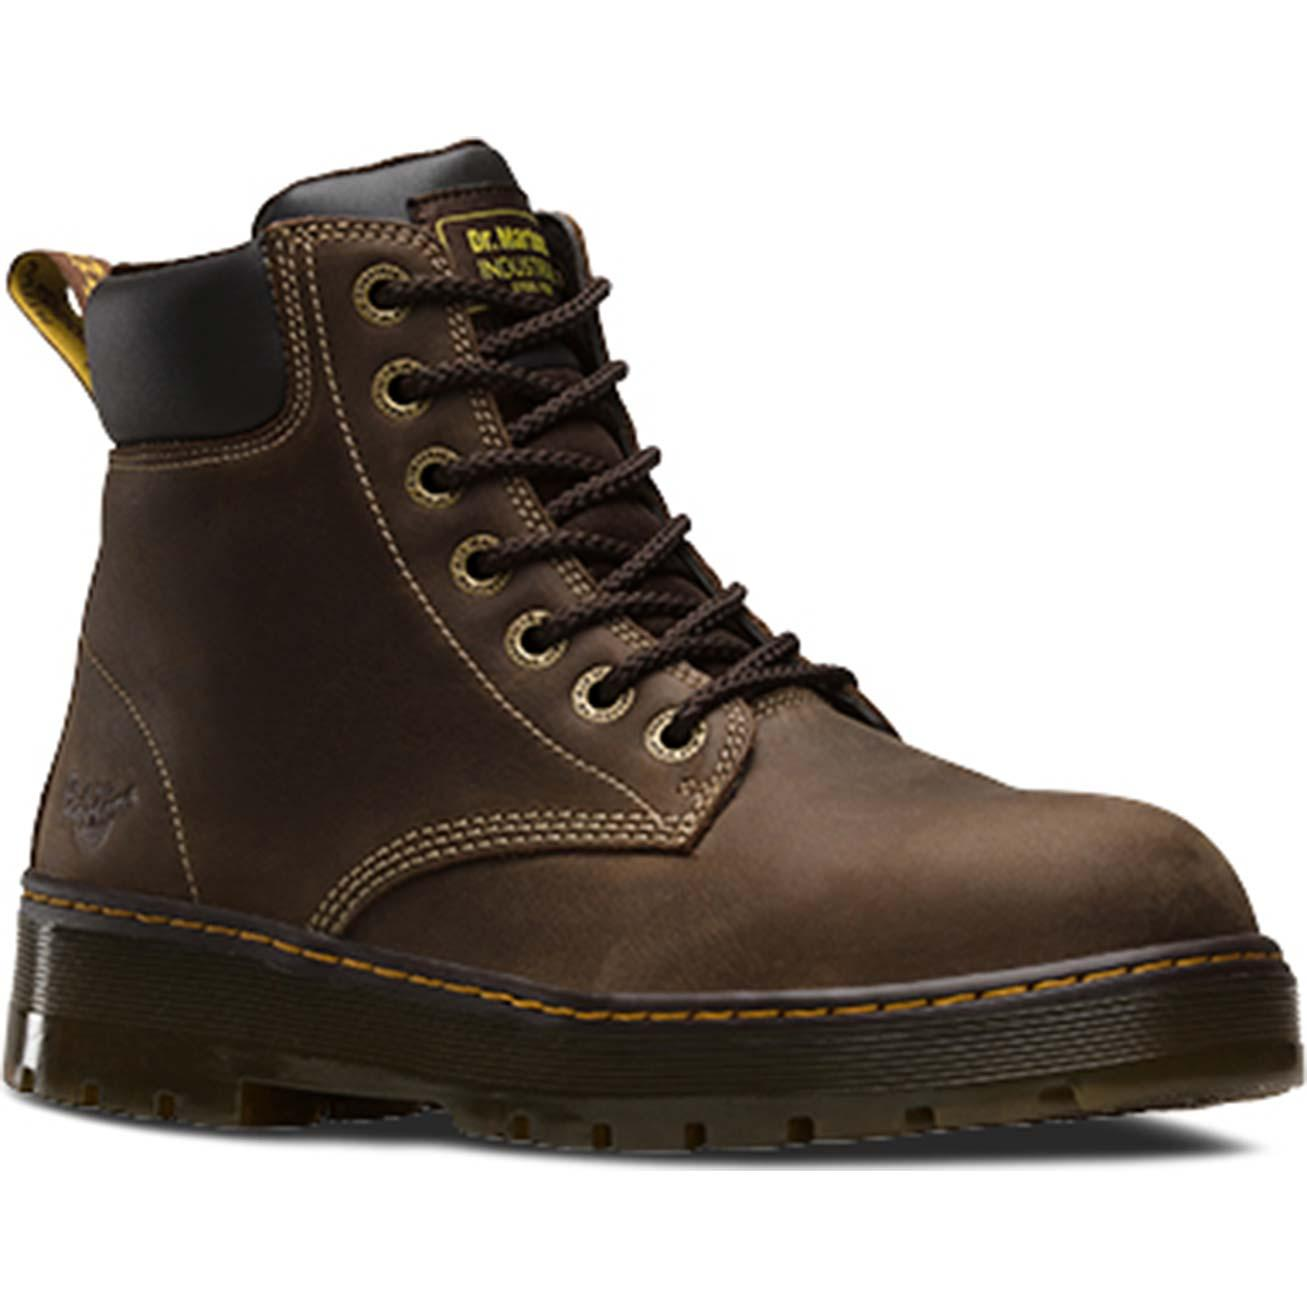 Dr. Martens Boots & Shoes. Dr. Klaus Martens invented the Air Cushion Sole in , and a legend was born. Instrumental in revolutionary style and embraced by every culture, Doc Martens boots and shoes for women and men are the perfect combination of classic style and premium comfort.